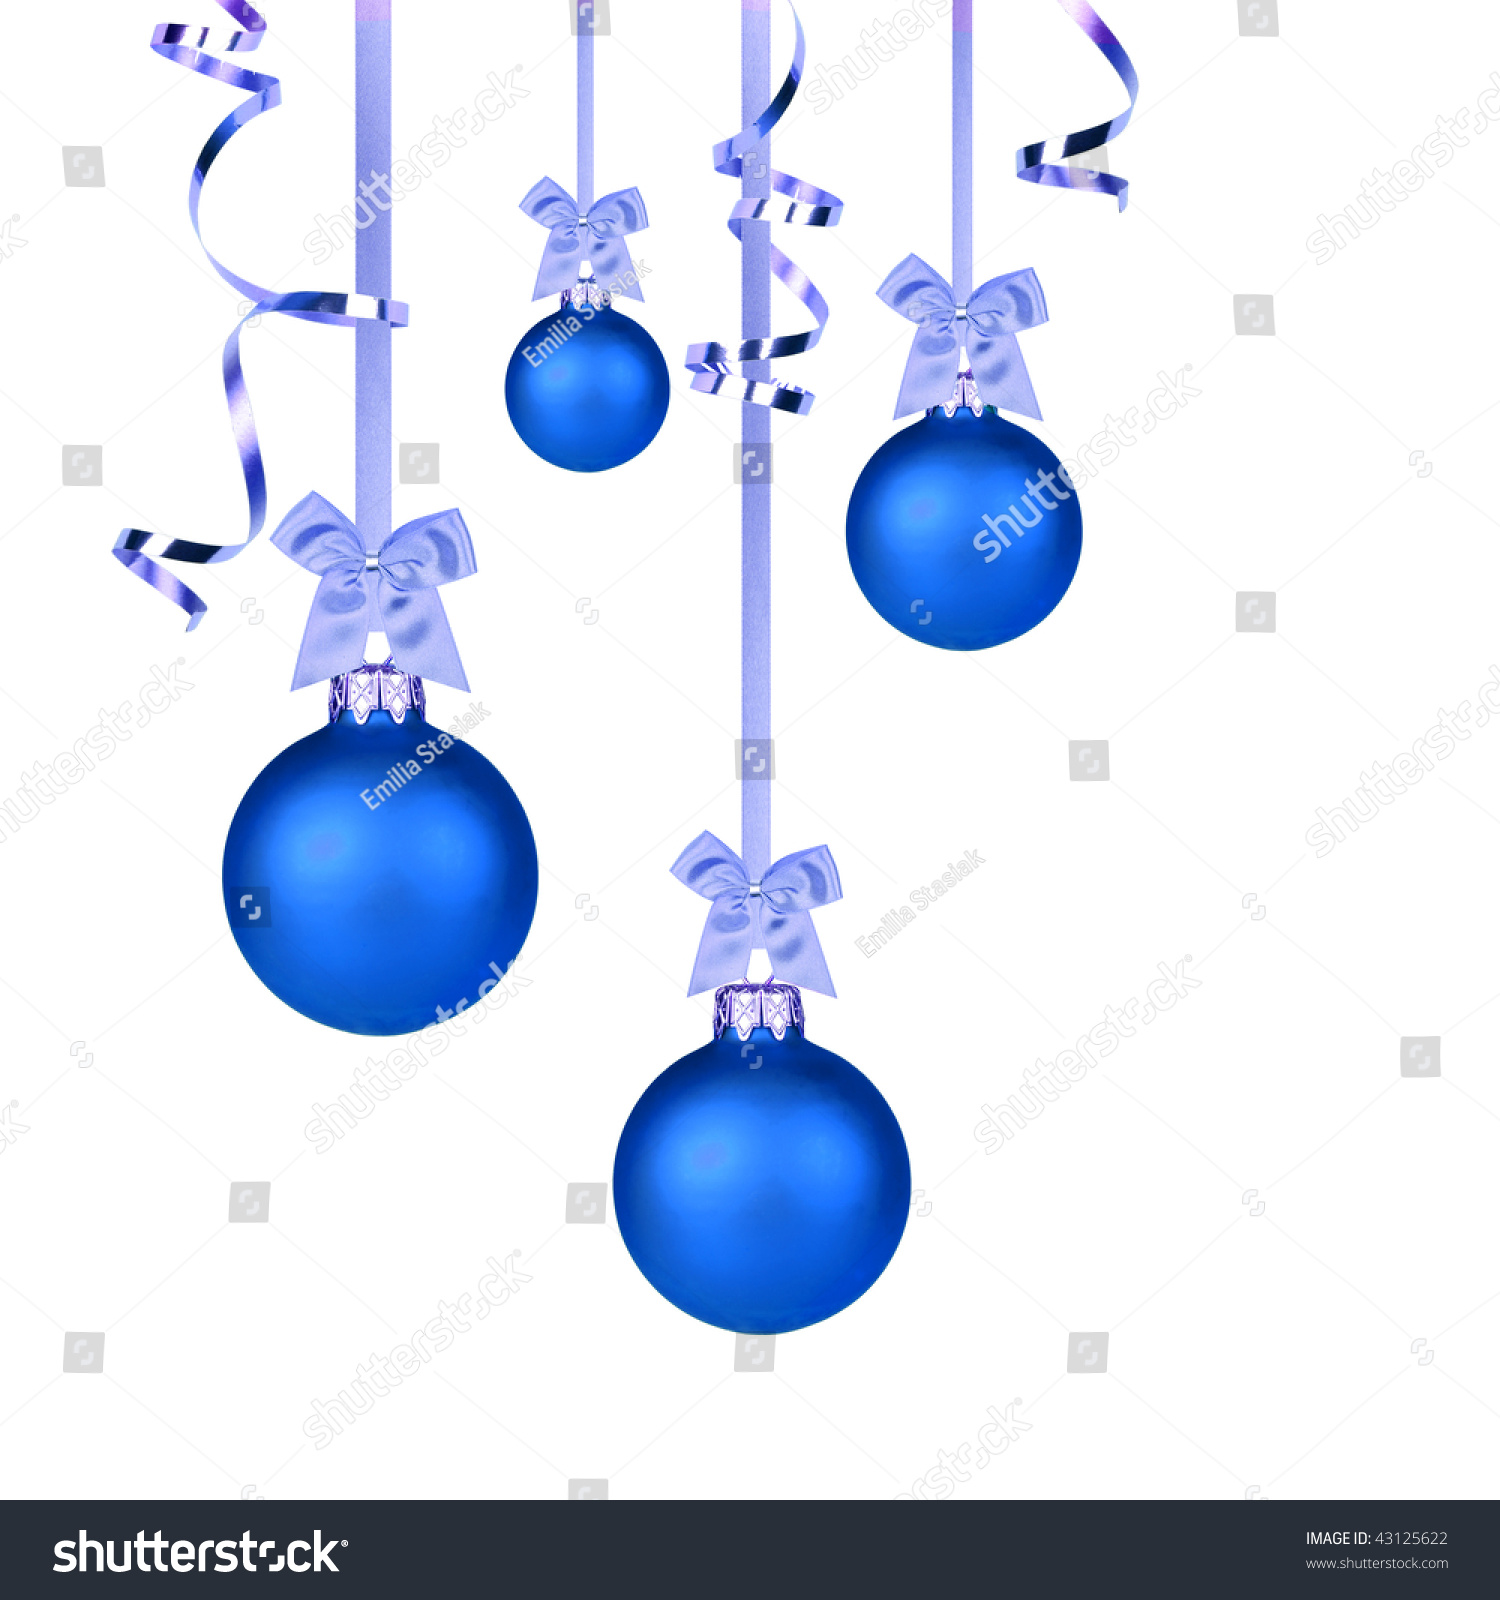 Blue Christmas Baubles Hanging With Ribbons On White